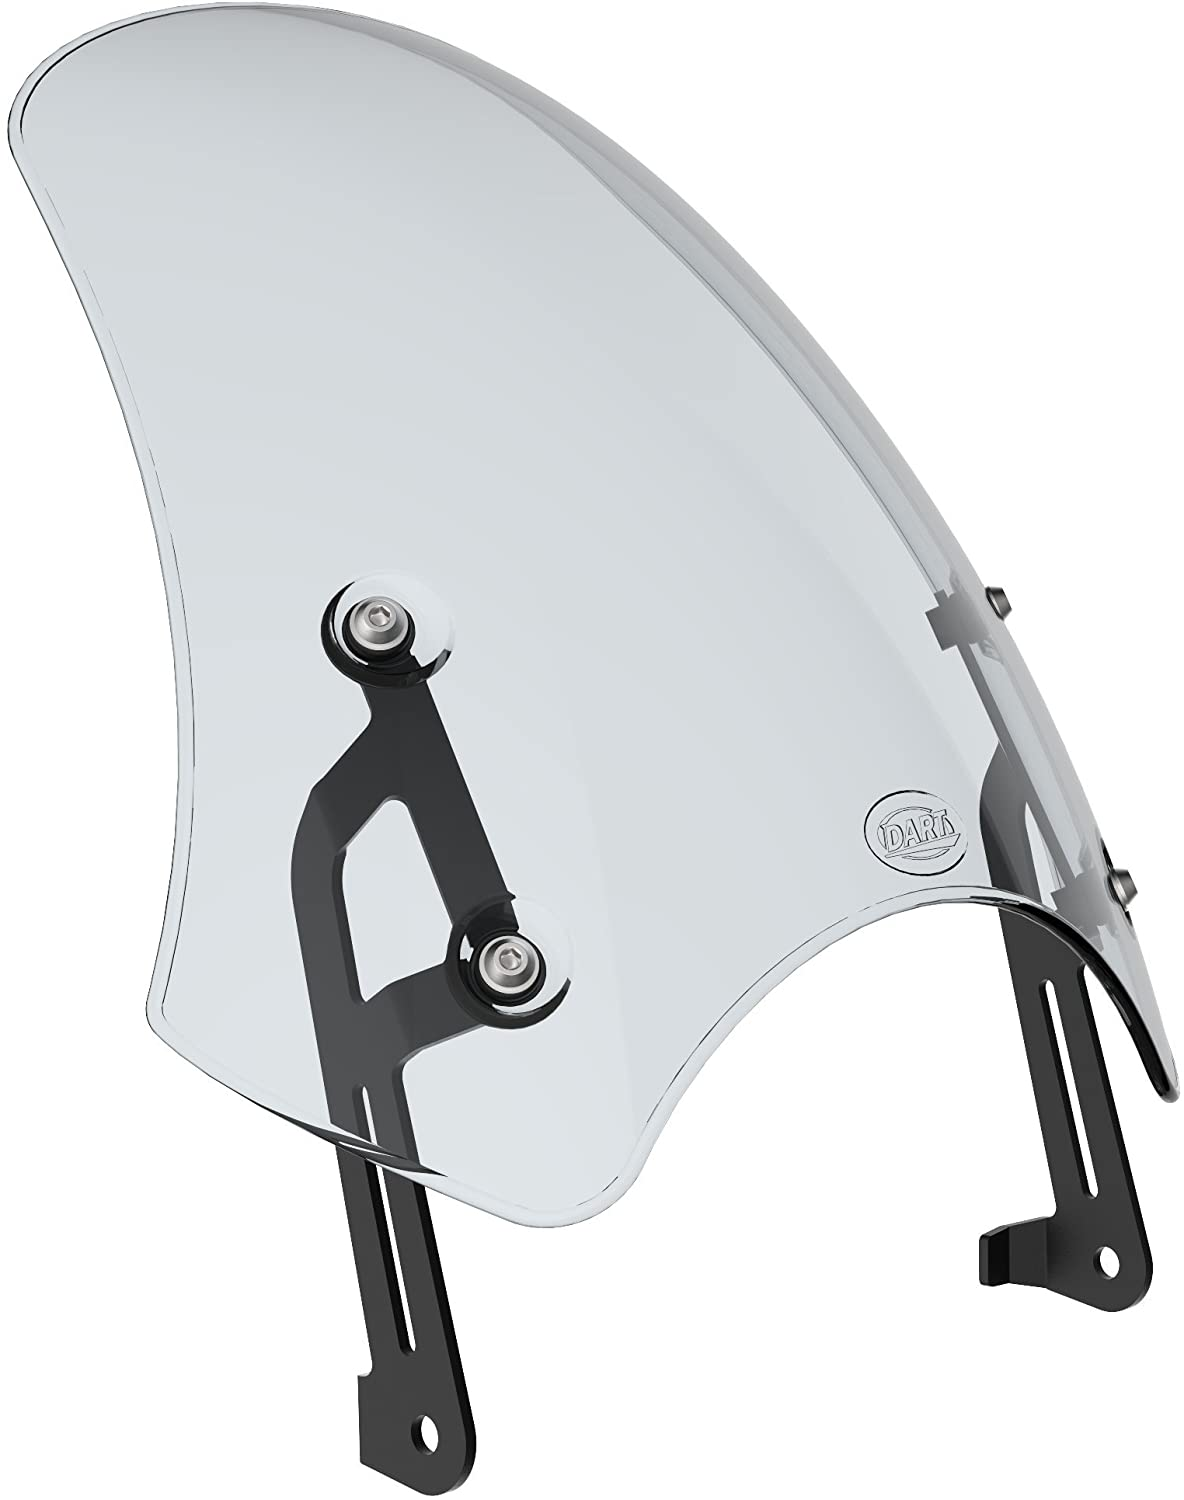 Dart Marlin Flyscreen Windshield for Triumph Thruxton 1200 - light tint